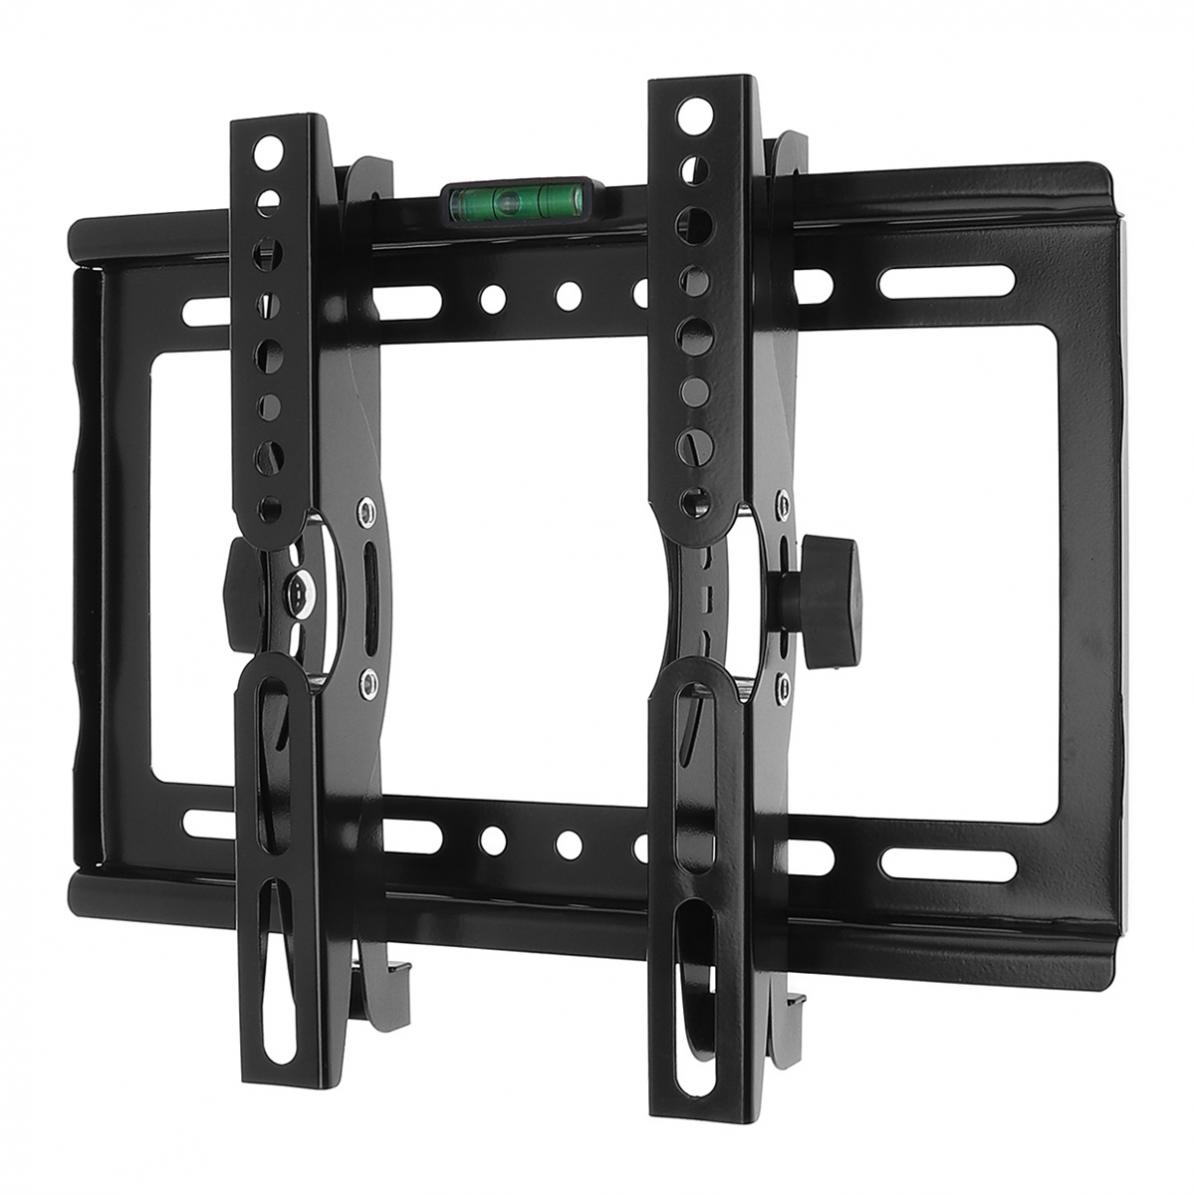 "14-42"" TV Wall Mount Bracket Flat Panel TV Frame Support 15 Degrees Tilt Angle with Level Standard for LCD LED Monitor Flat Pan"